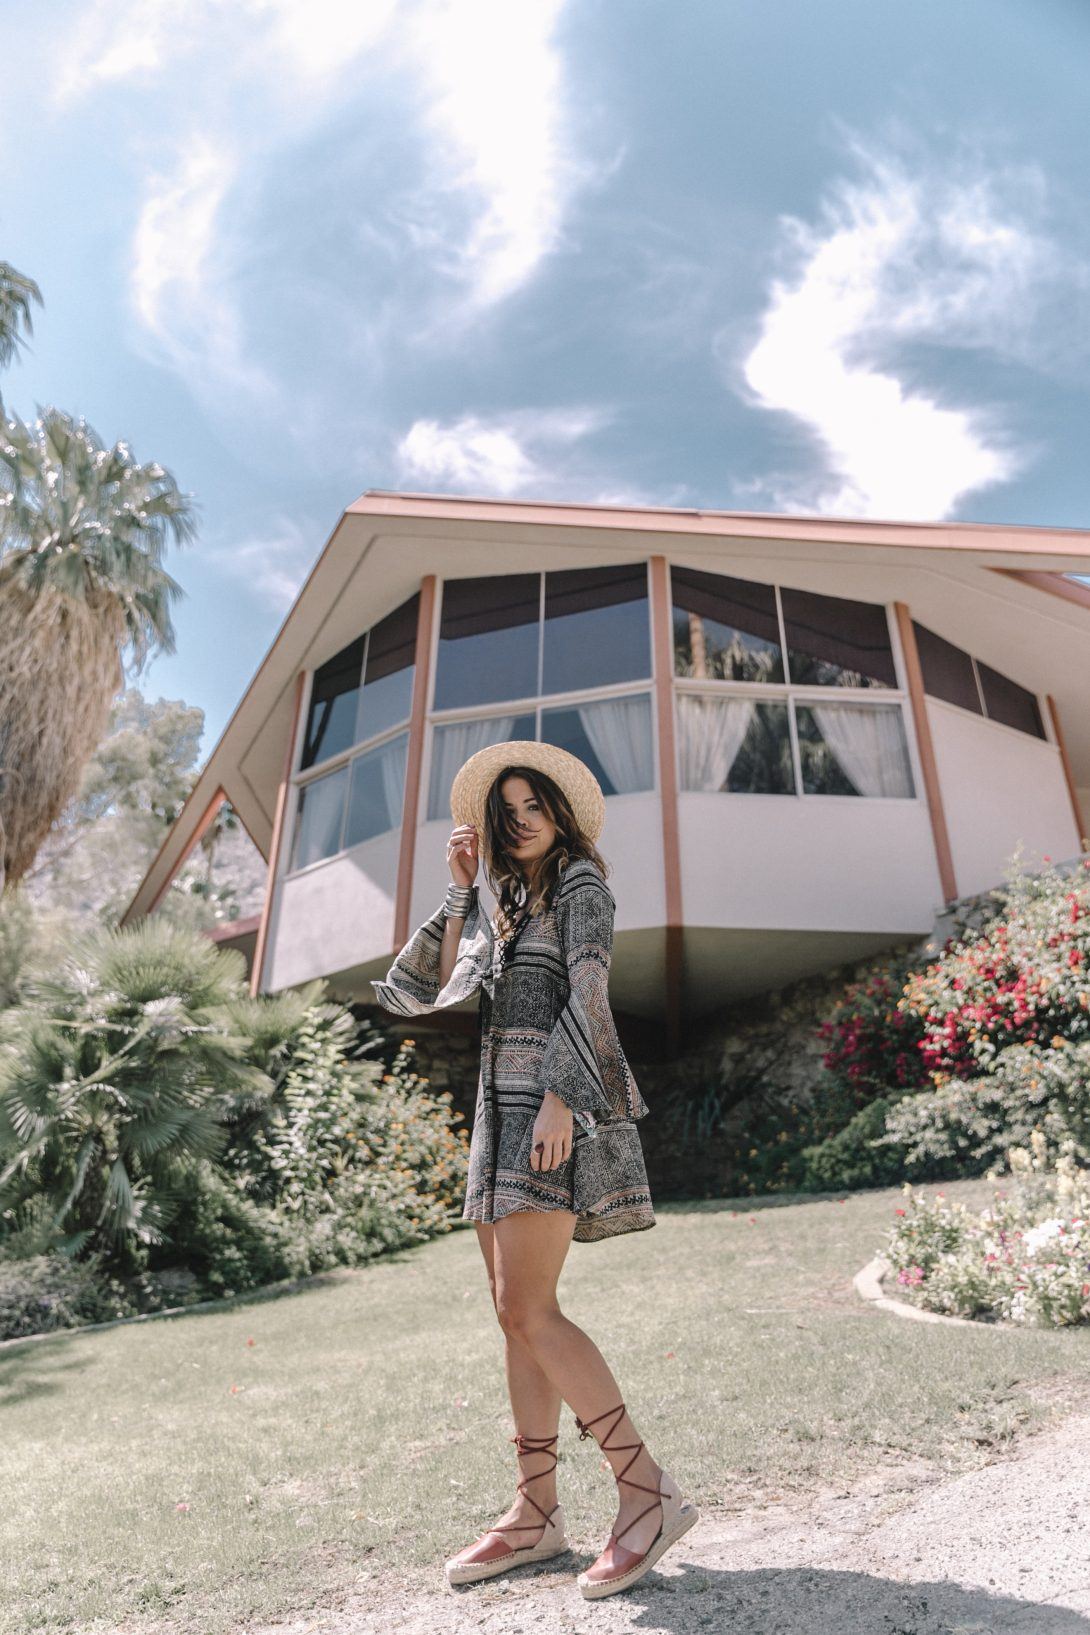 Boho_Dress-Lace_Up_Dress-Lack_of_Color-Revolve_Clothing-Straw_Hat-Soludos_Espadrilles-Palm_Springs-Outfit-Collage_Vintage-25